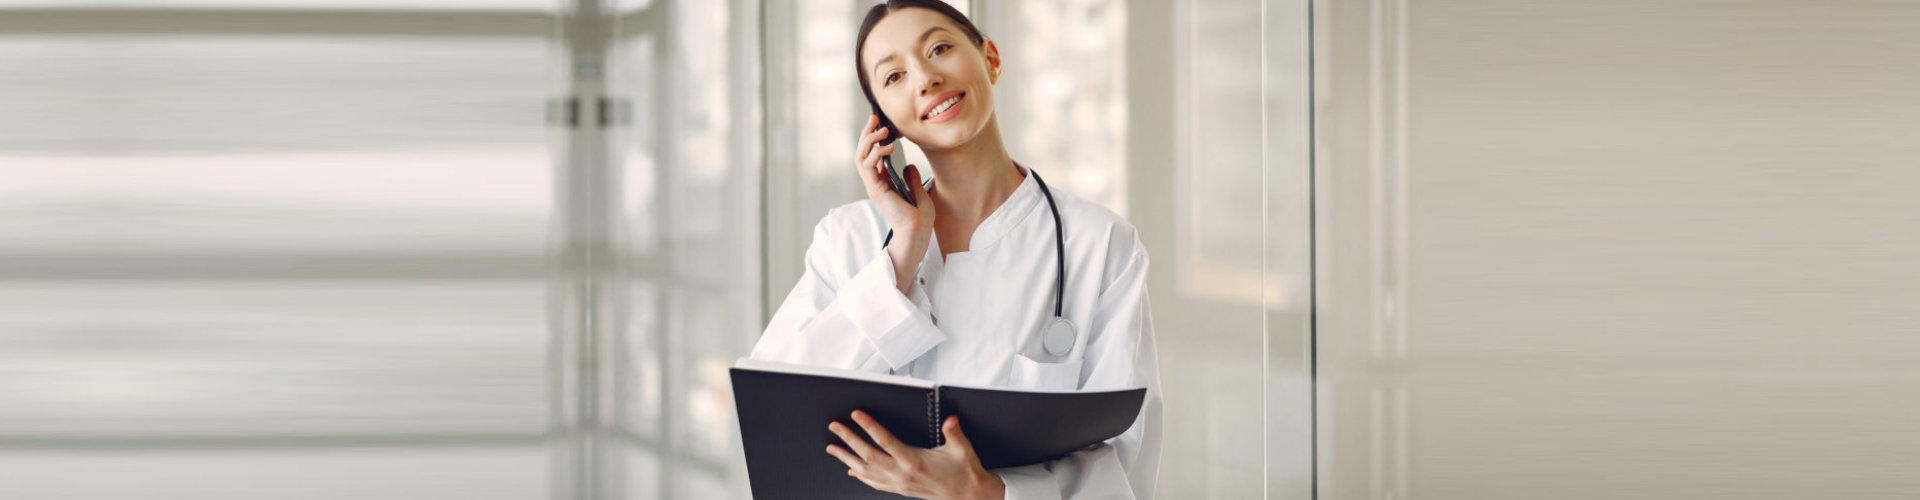 female nurse taking a phone call